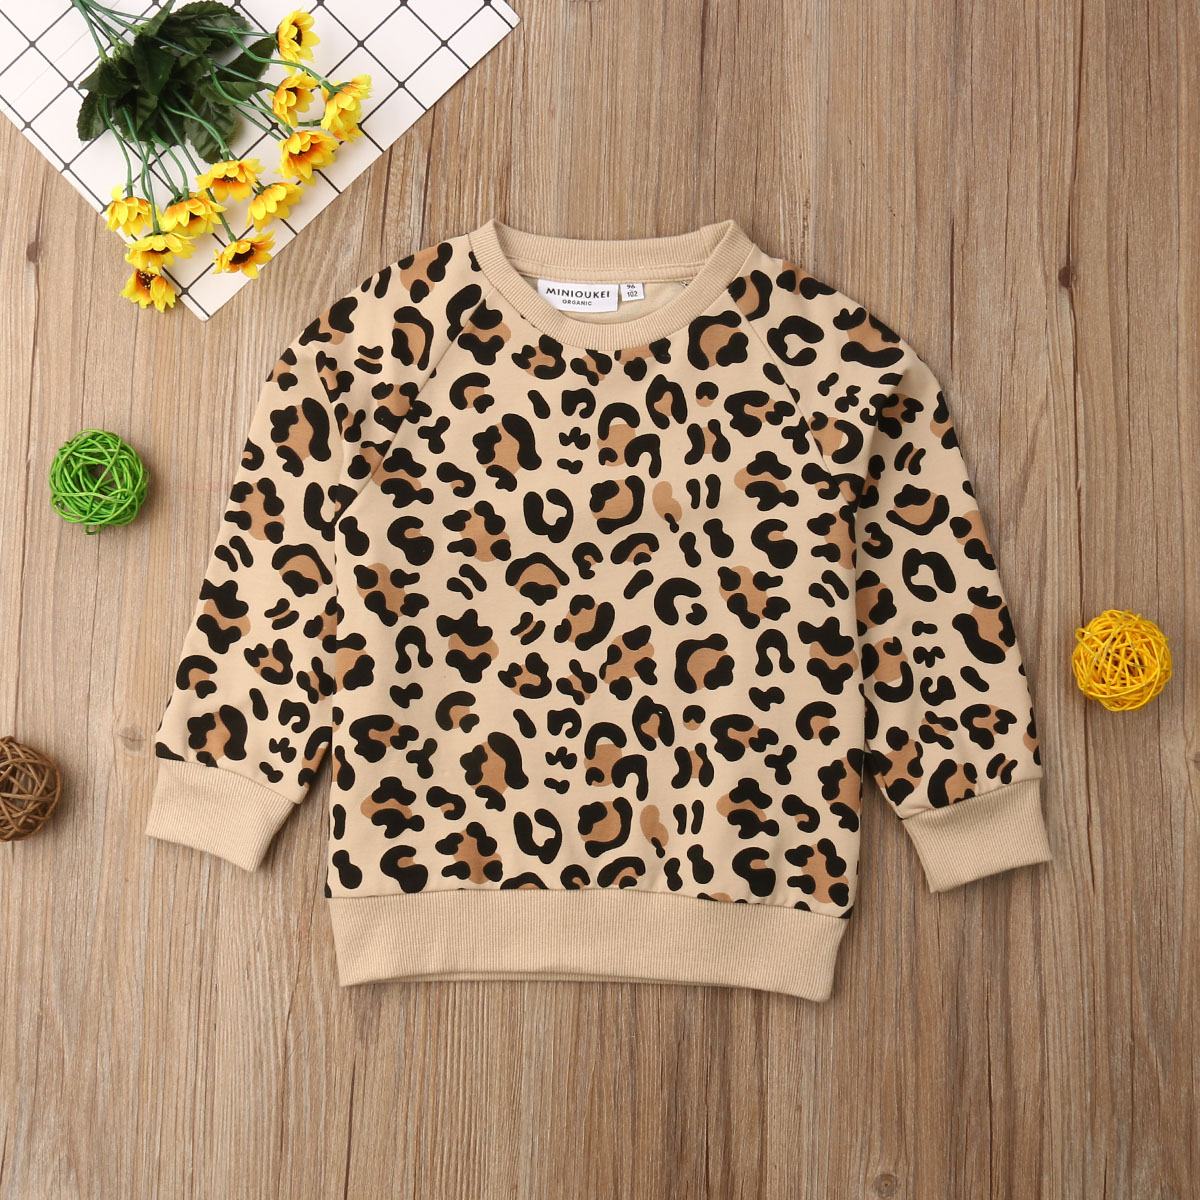 Long Sleeve Sweatshirts Hoodies Pullover Jumper Cotton Spring Clothing Kids Baby Girl Boy Bunny Leopard Print 1-6T(China)